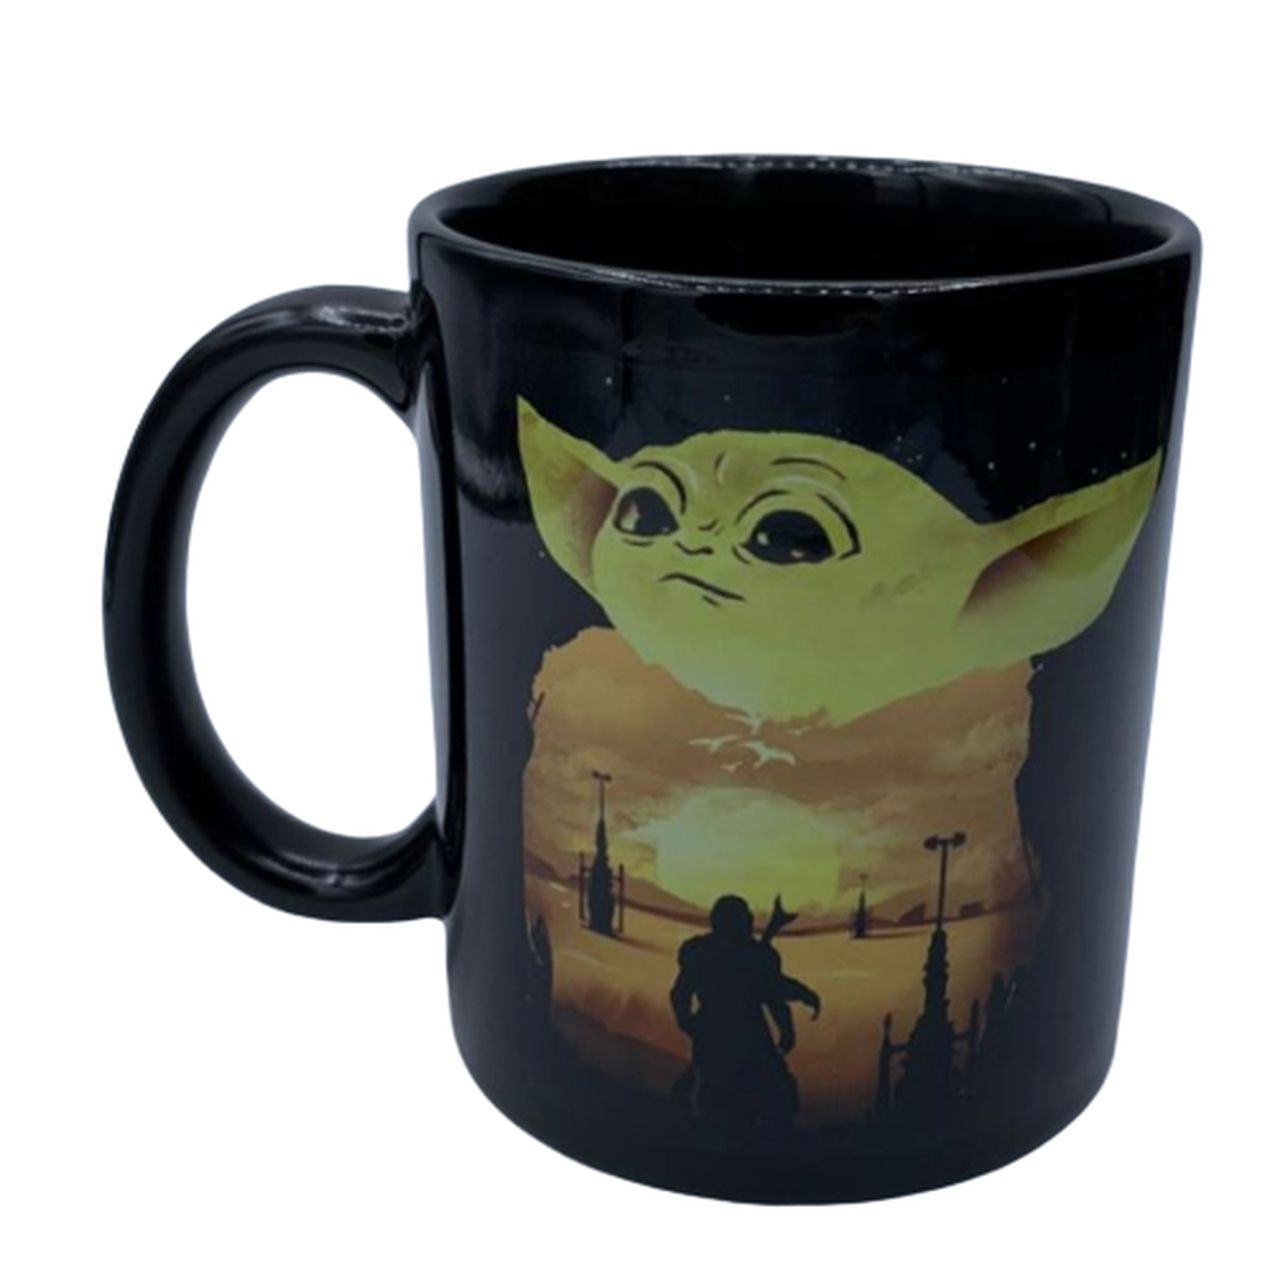 Caneca Baby Yoda (The Child): The Mandalorian (Star Wars) - Exclusiva ToyShow